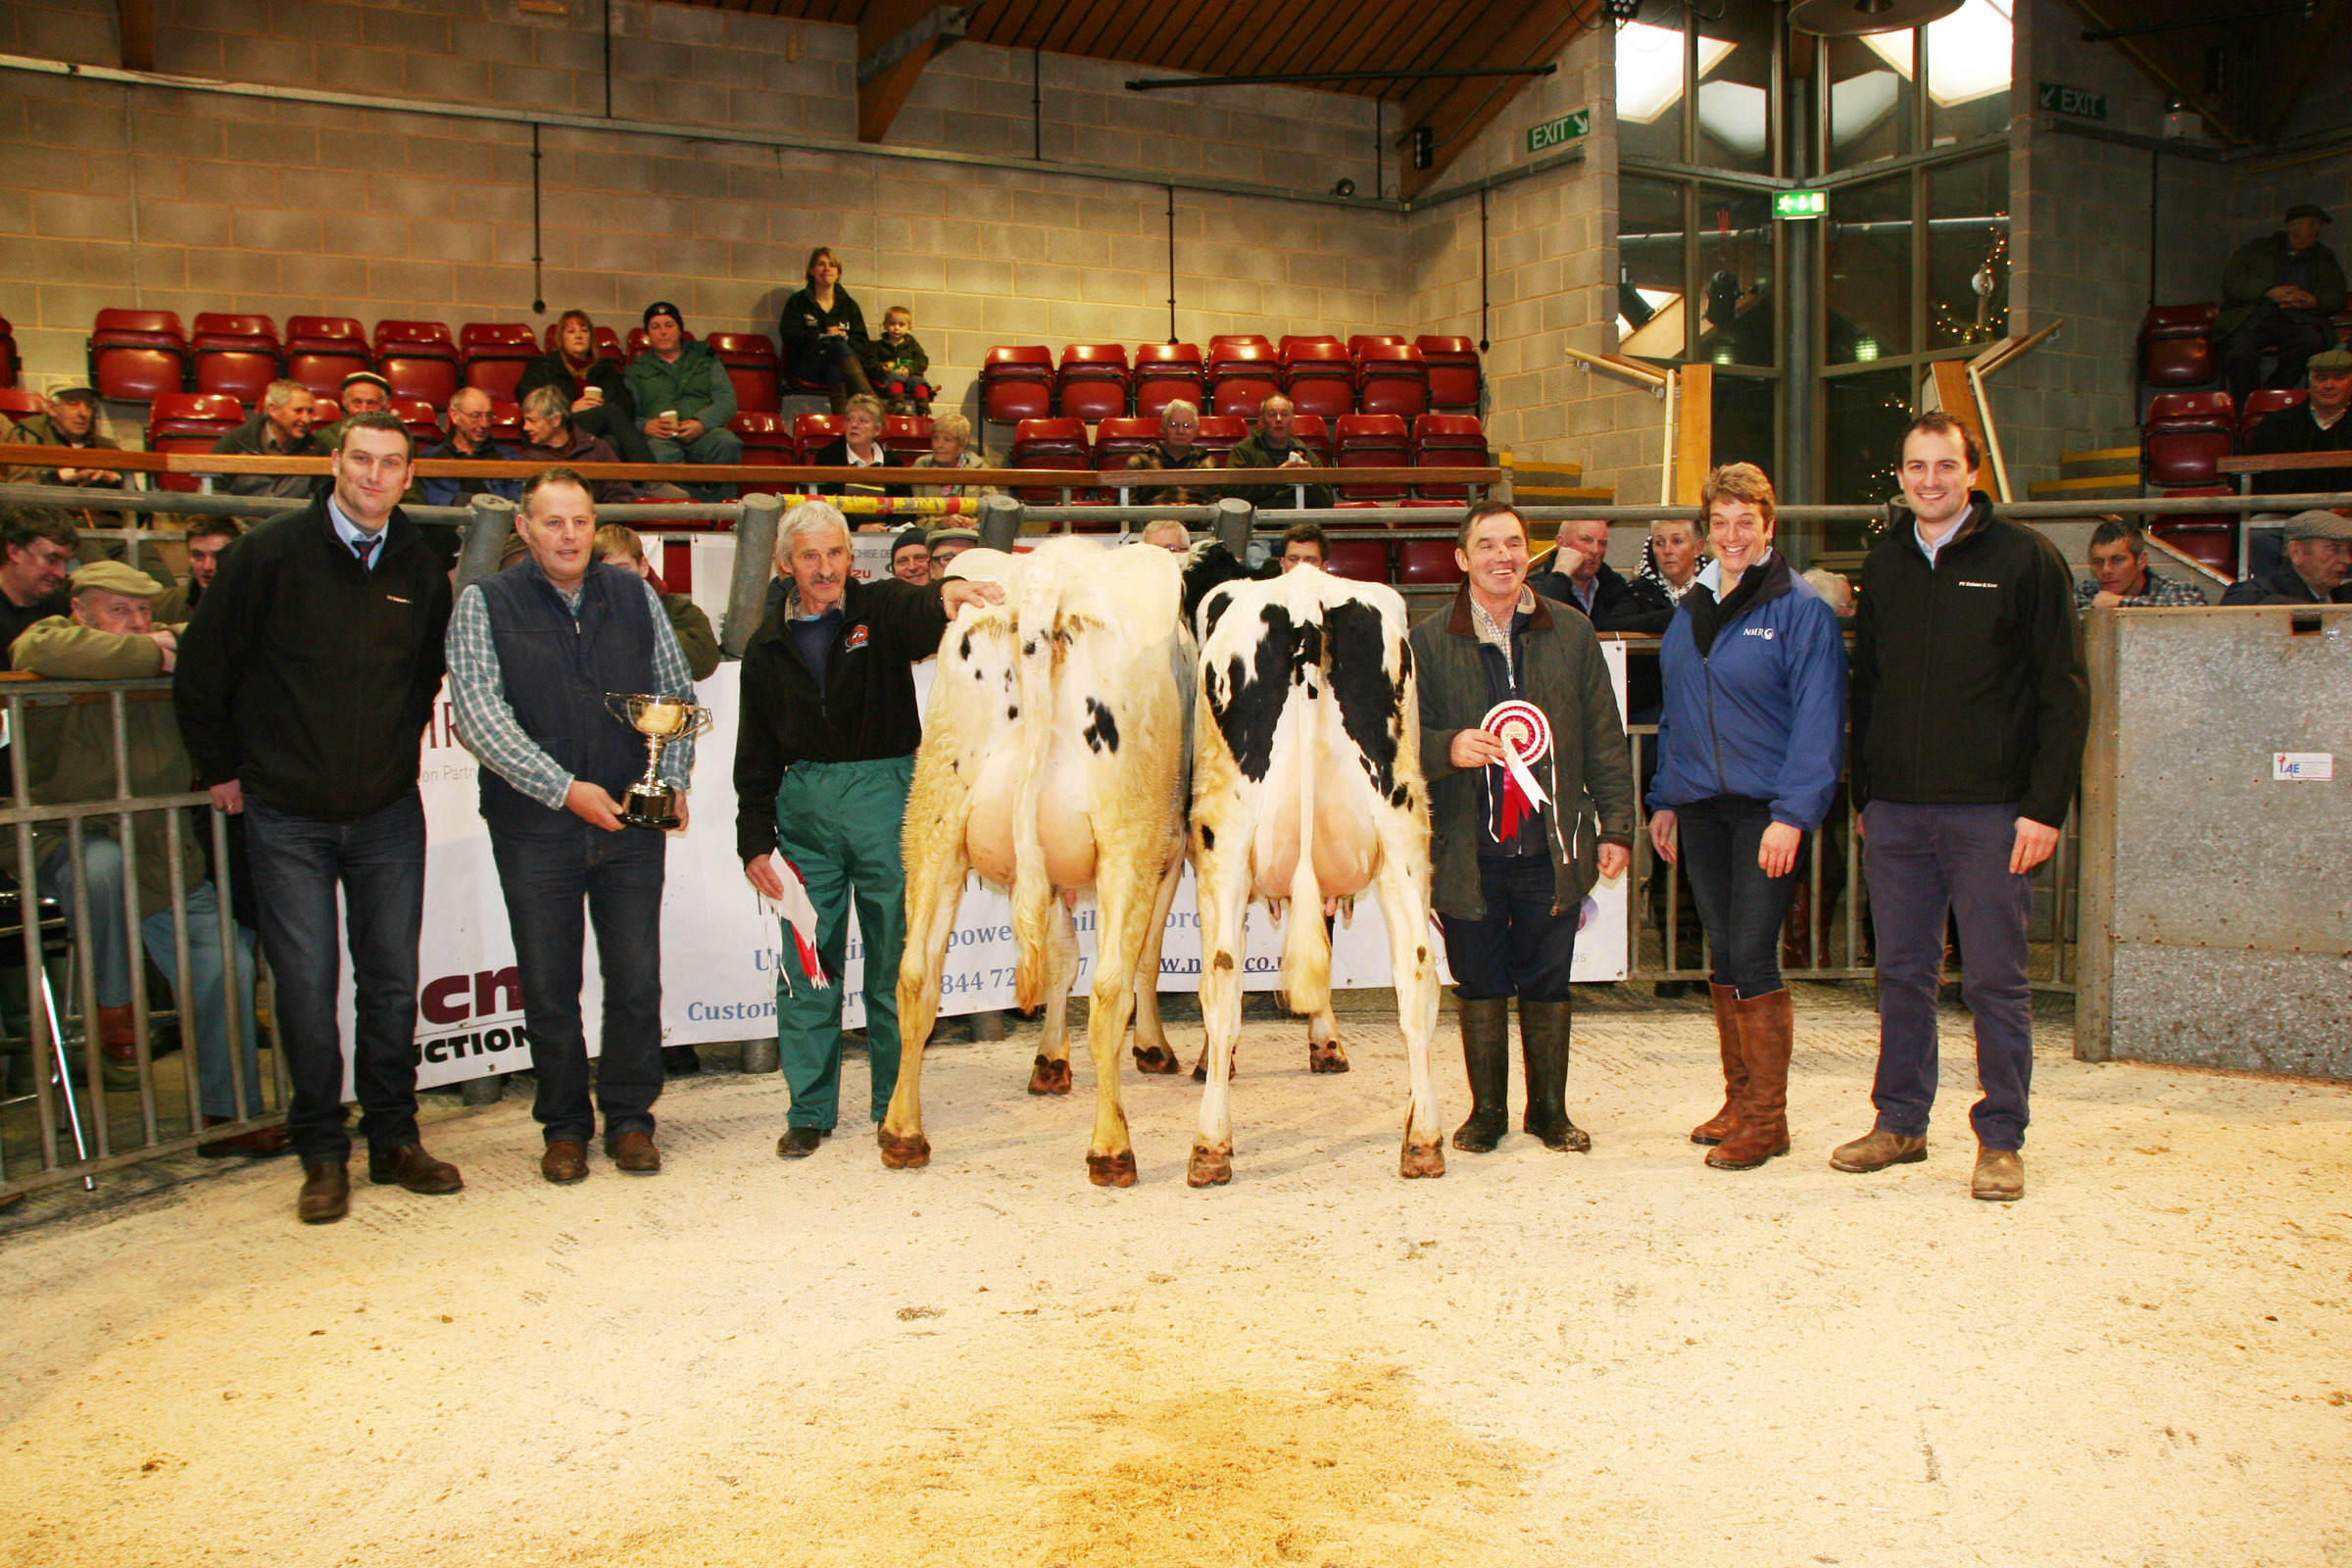 ): Pictured with the frontrunners at Skipton's Christmas Craven Dairy Auction are, from left, PV Dobson's William Bell, judge David Hall, champion Robert Crisp, reserve champion Brian Moorhouse, NMR's Helen Whittaker and Dobson's Paul Taylor